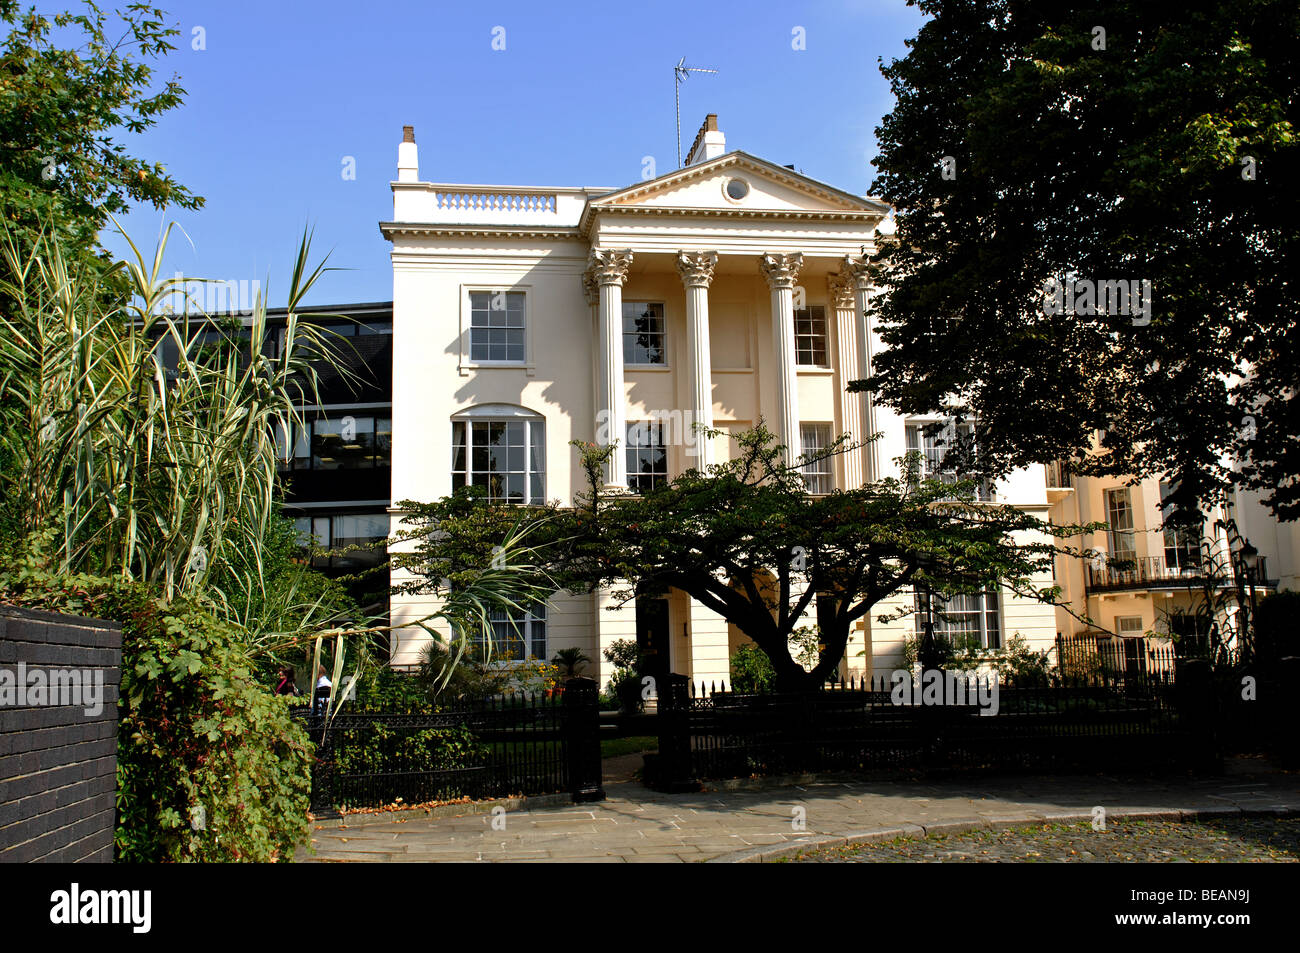 Hayward House, The Royal College of Physicians, London, England, UK - Stock Image